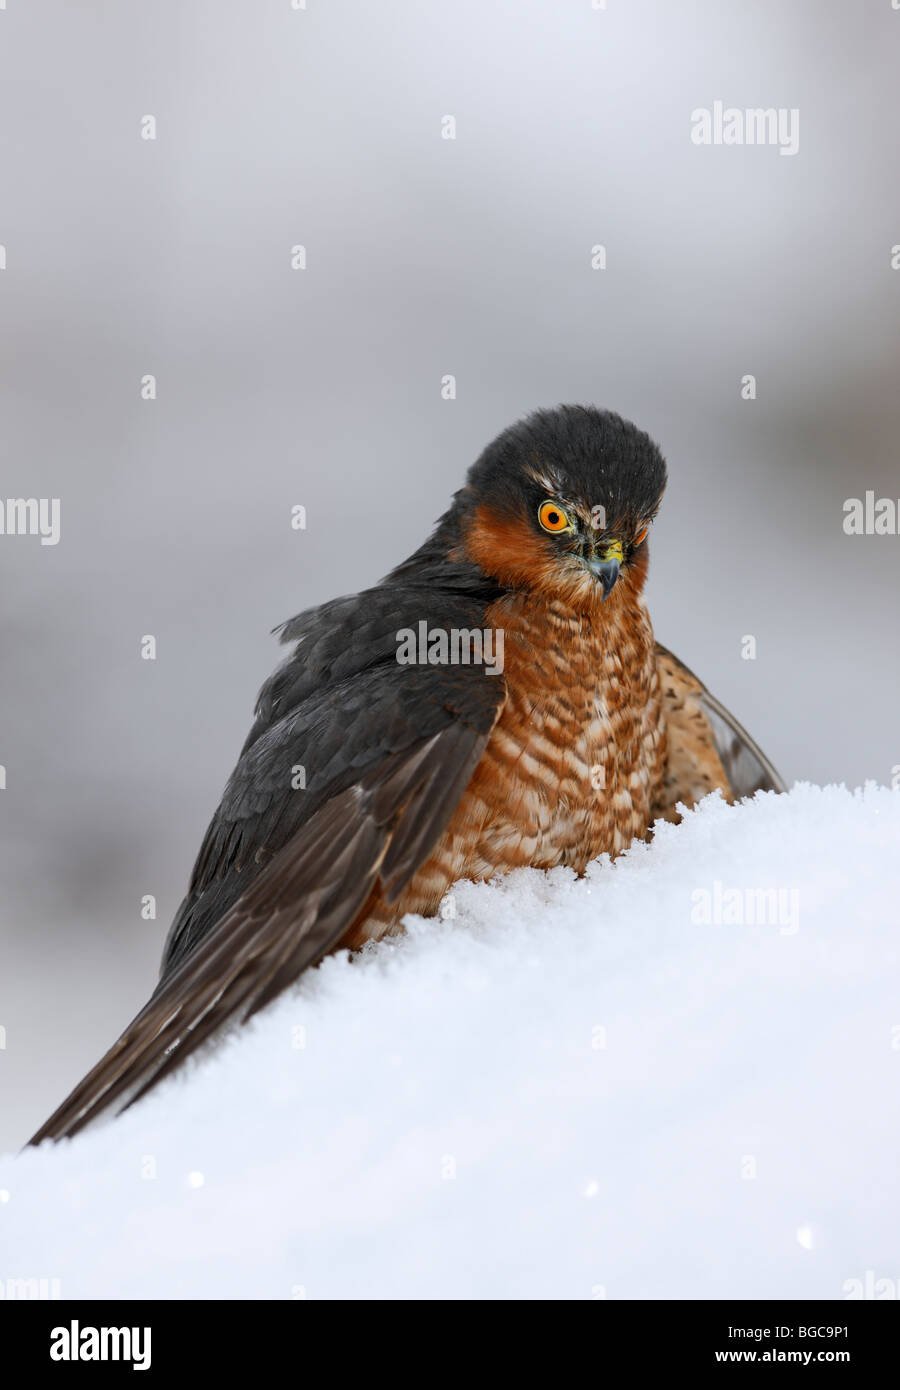 Sparrowhawk Accipiter nisus on kill in snow - Stock Image